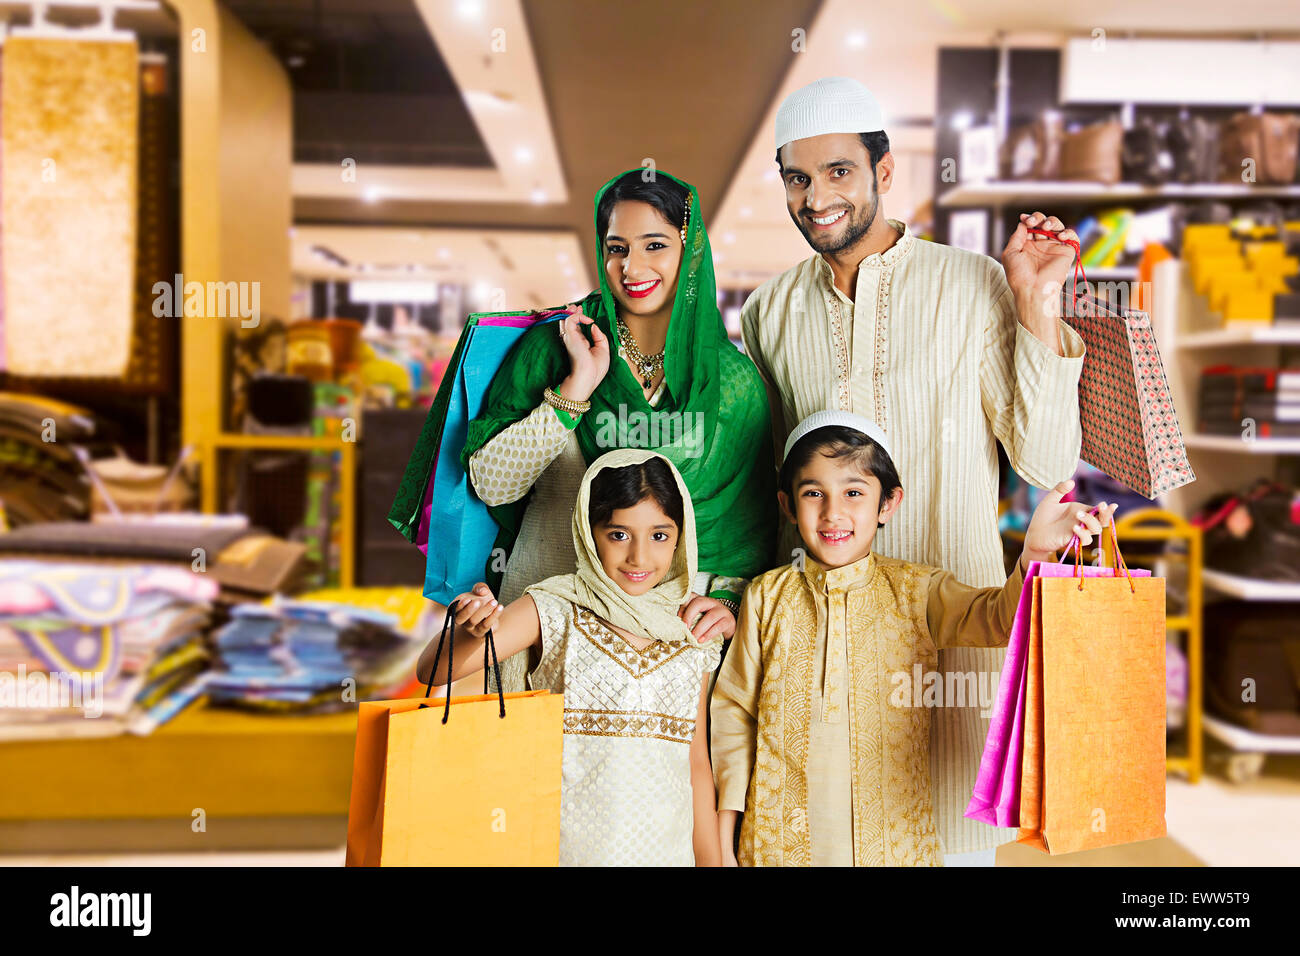 indian Muslim Parents and kids mall shopping Stock Photo - Alamy